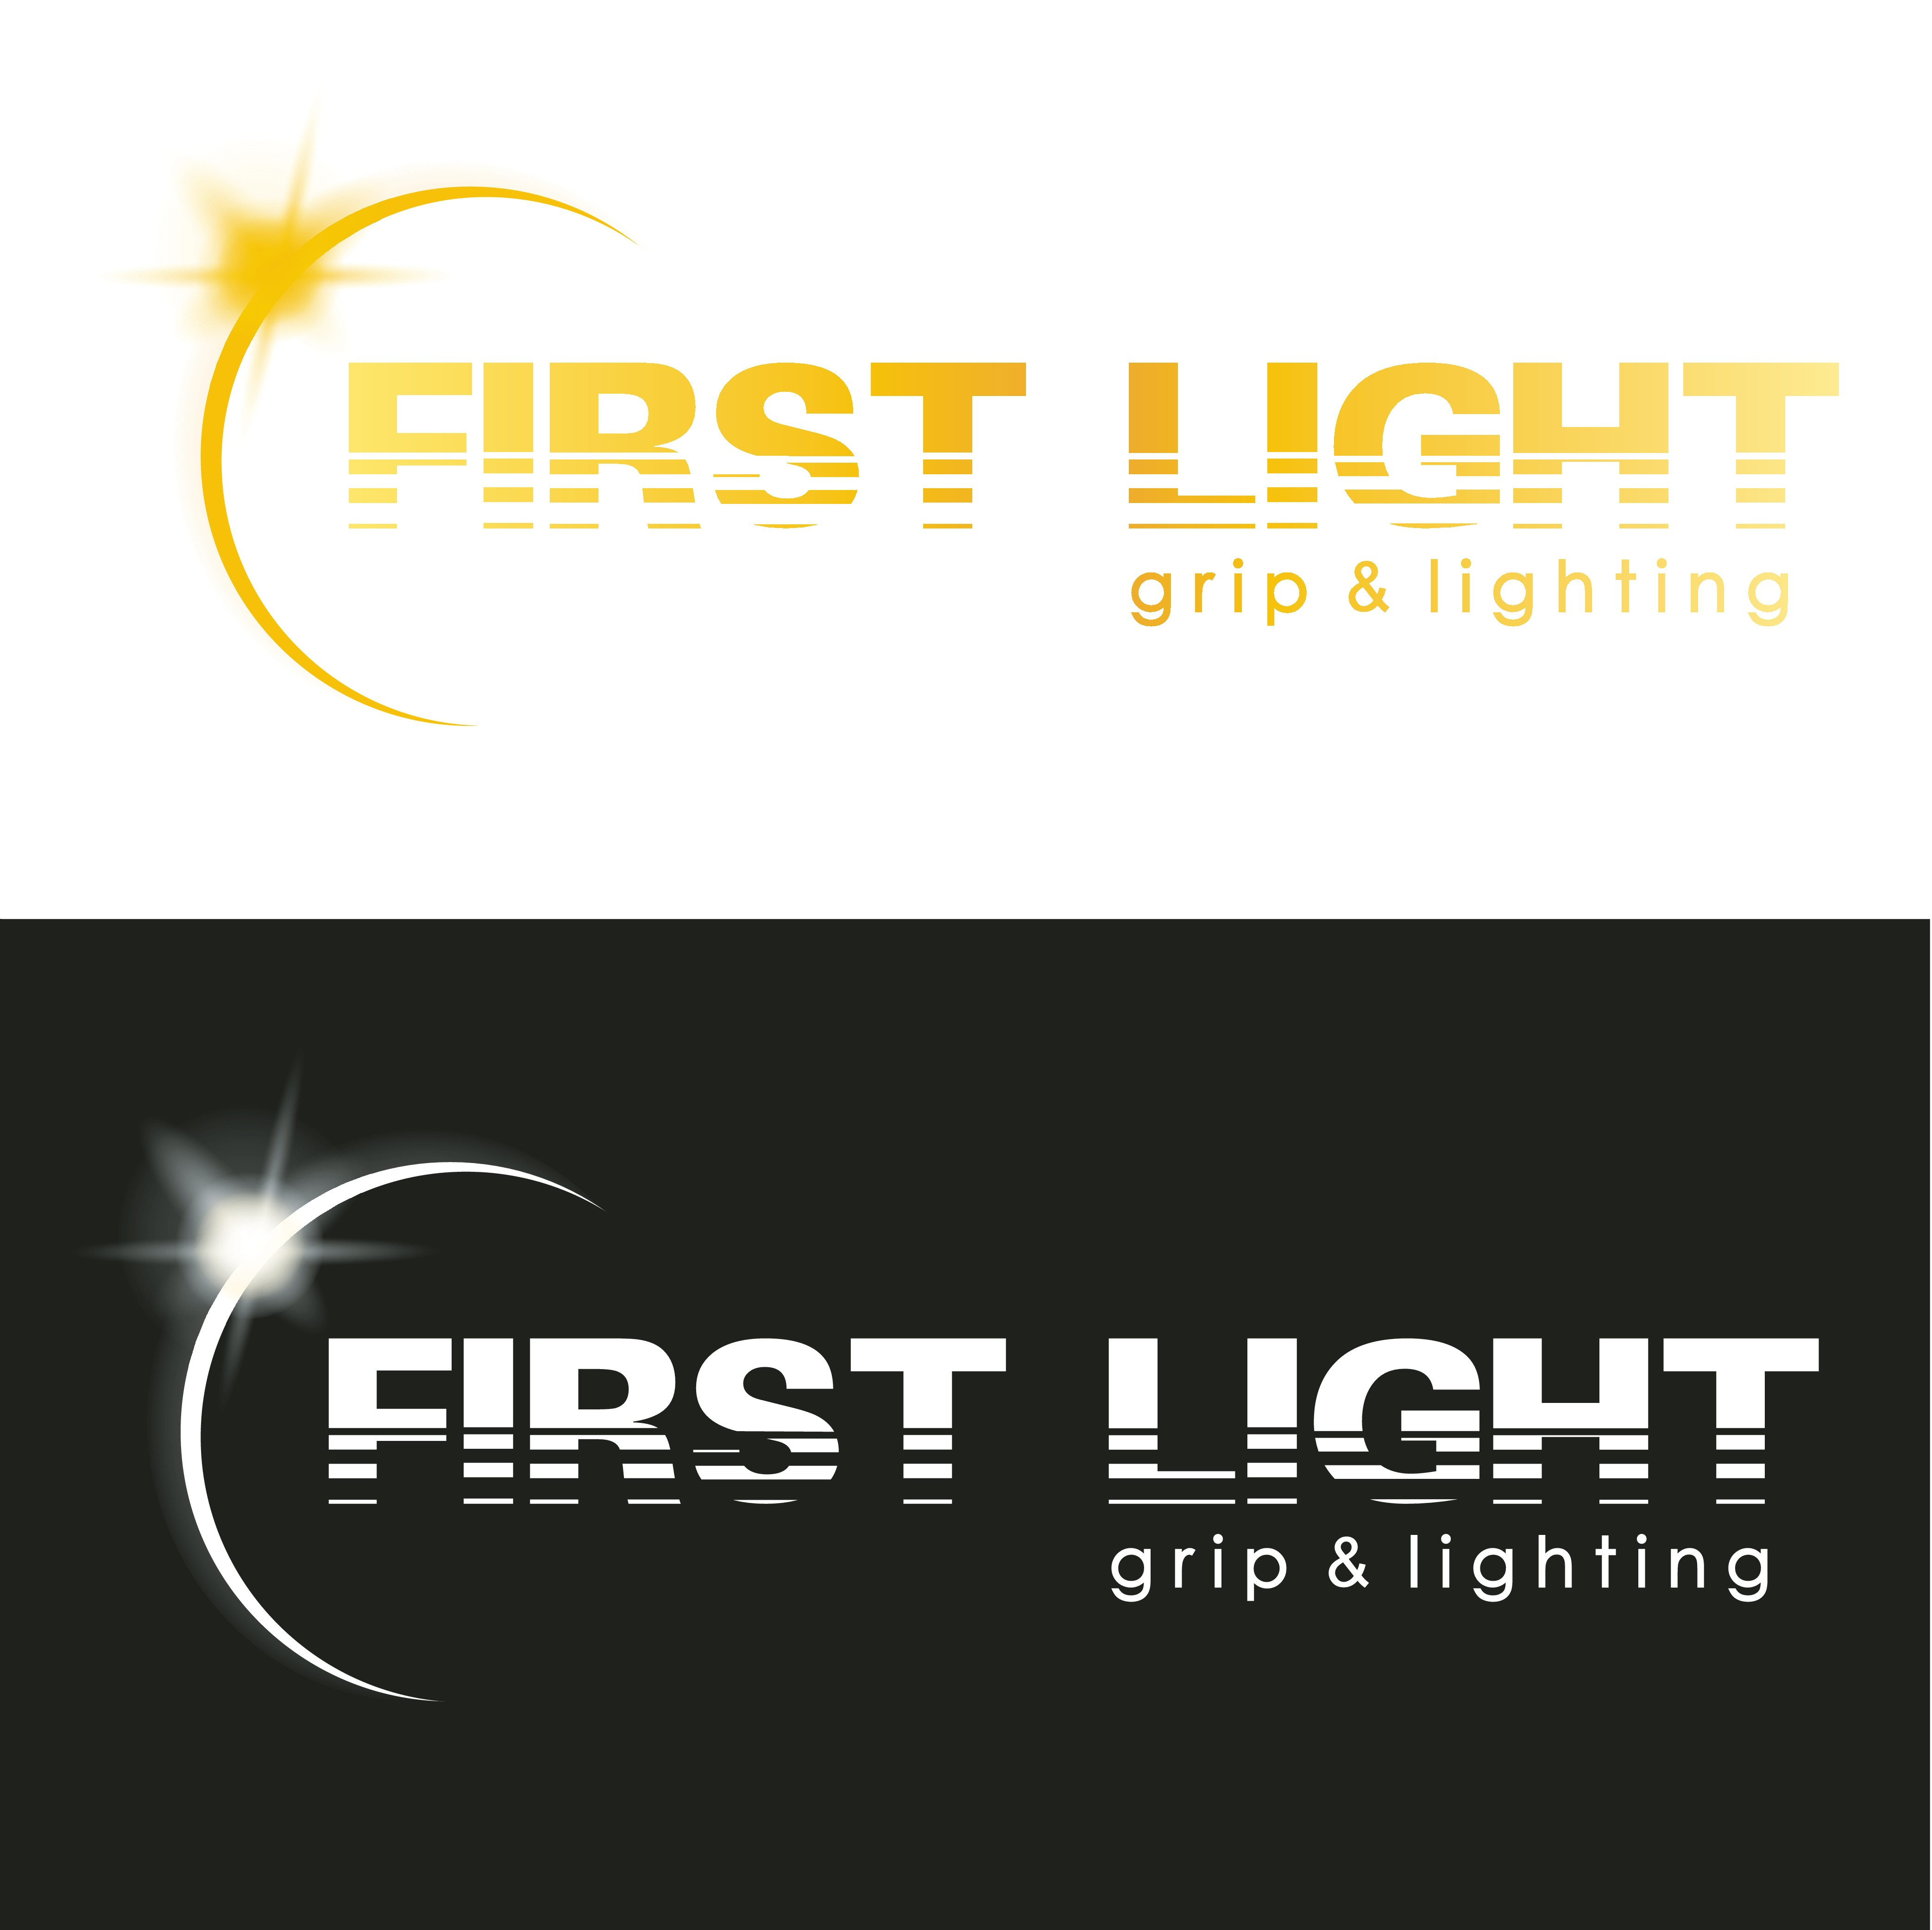 Create a logo for a lighting company in the film industry